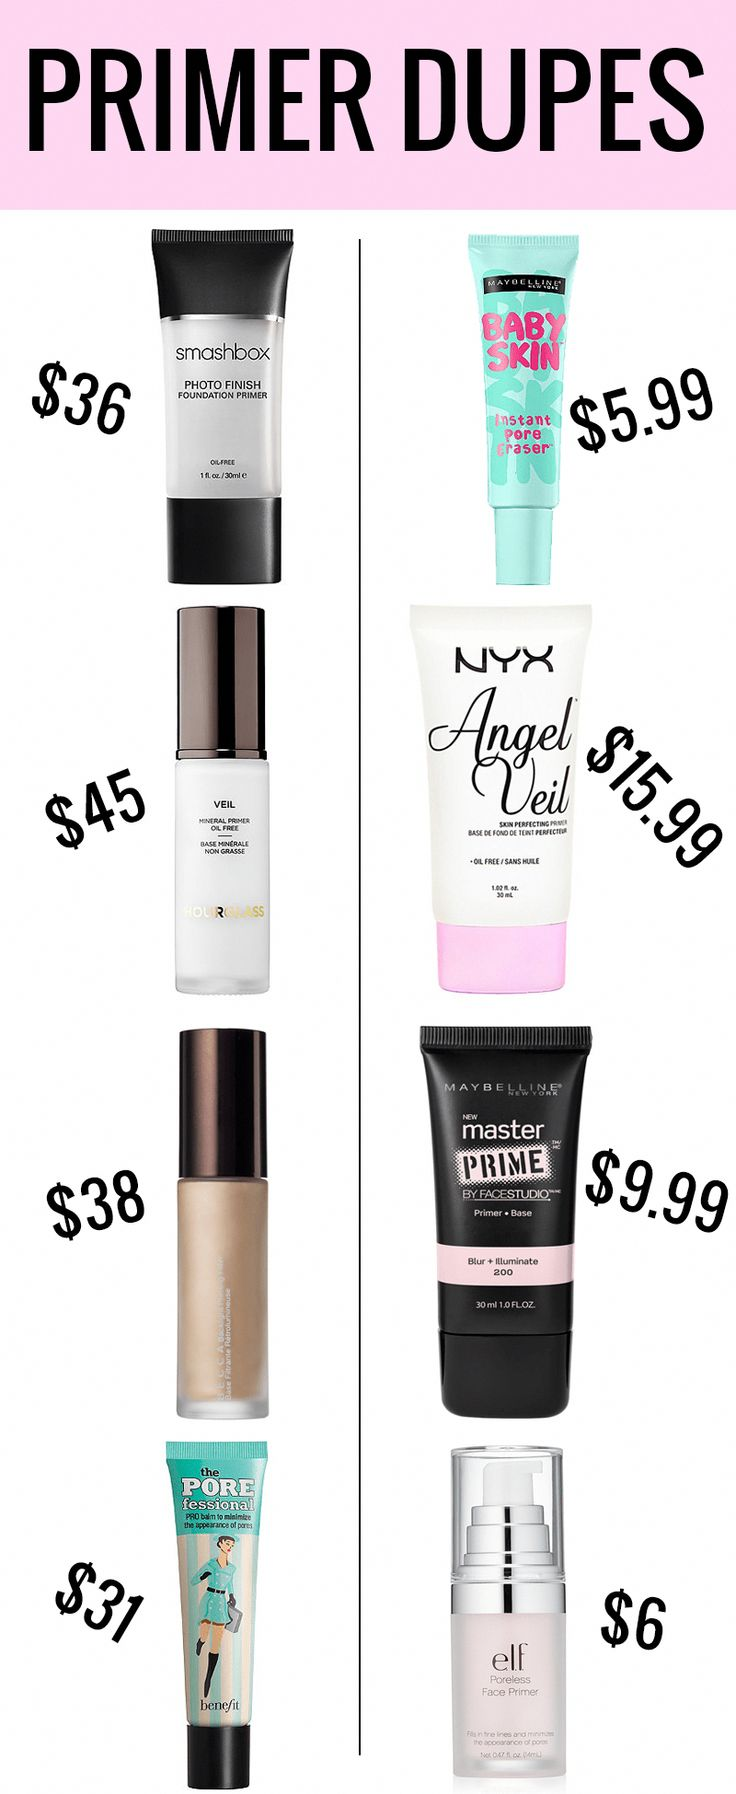 Why buy end when there are so many amazing makeup primer